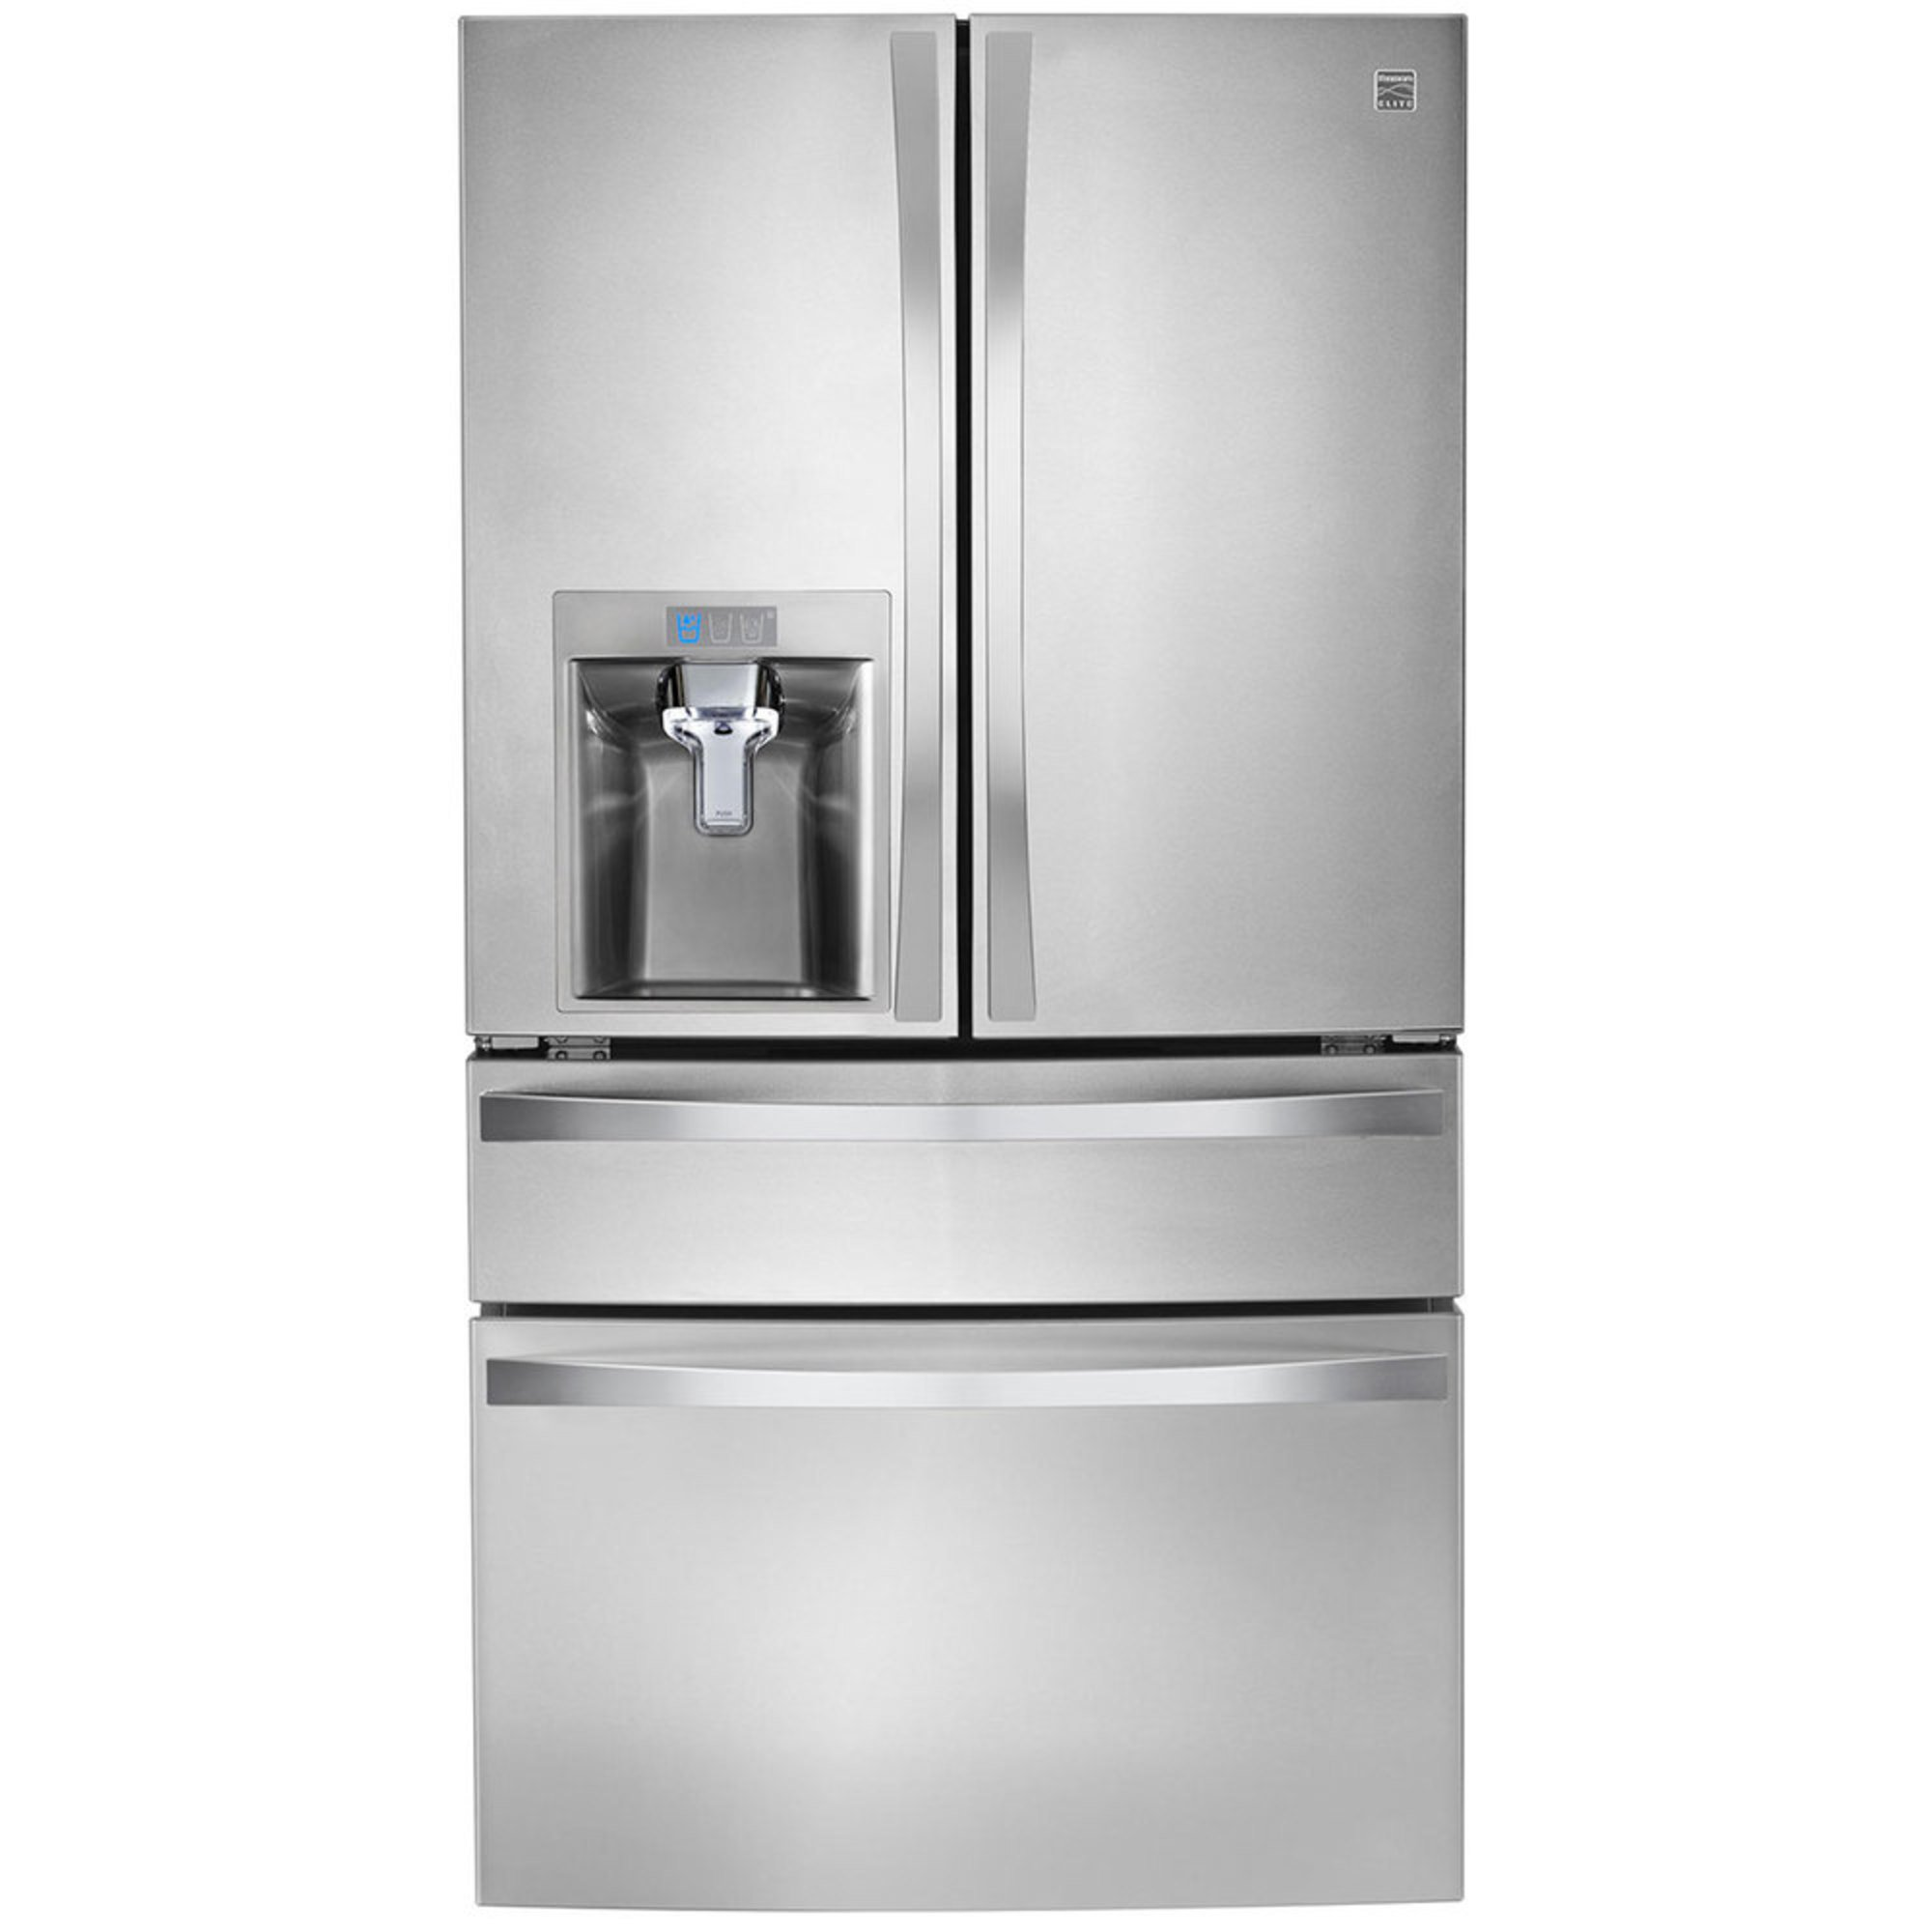 Kenmore elite 299 cuft 4 door french door refrigerator kenmore kenmore elite 299 cuft 4 door french door refrigerator rubansaba